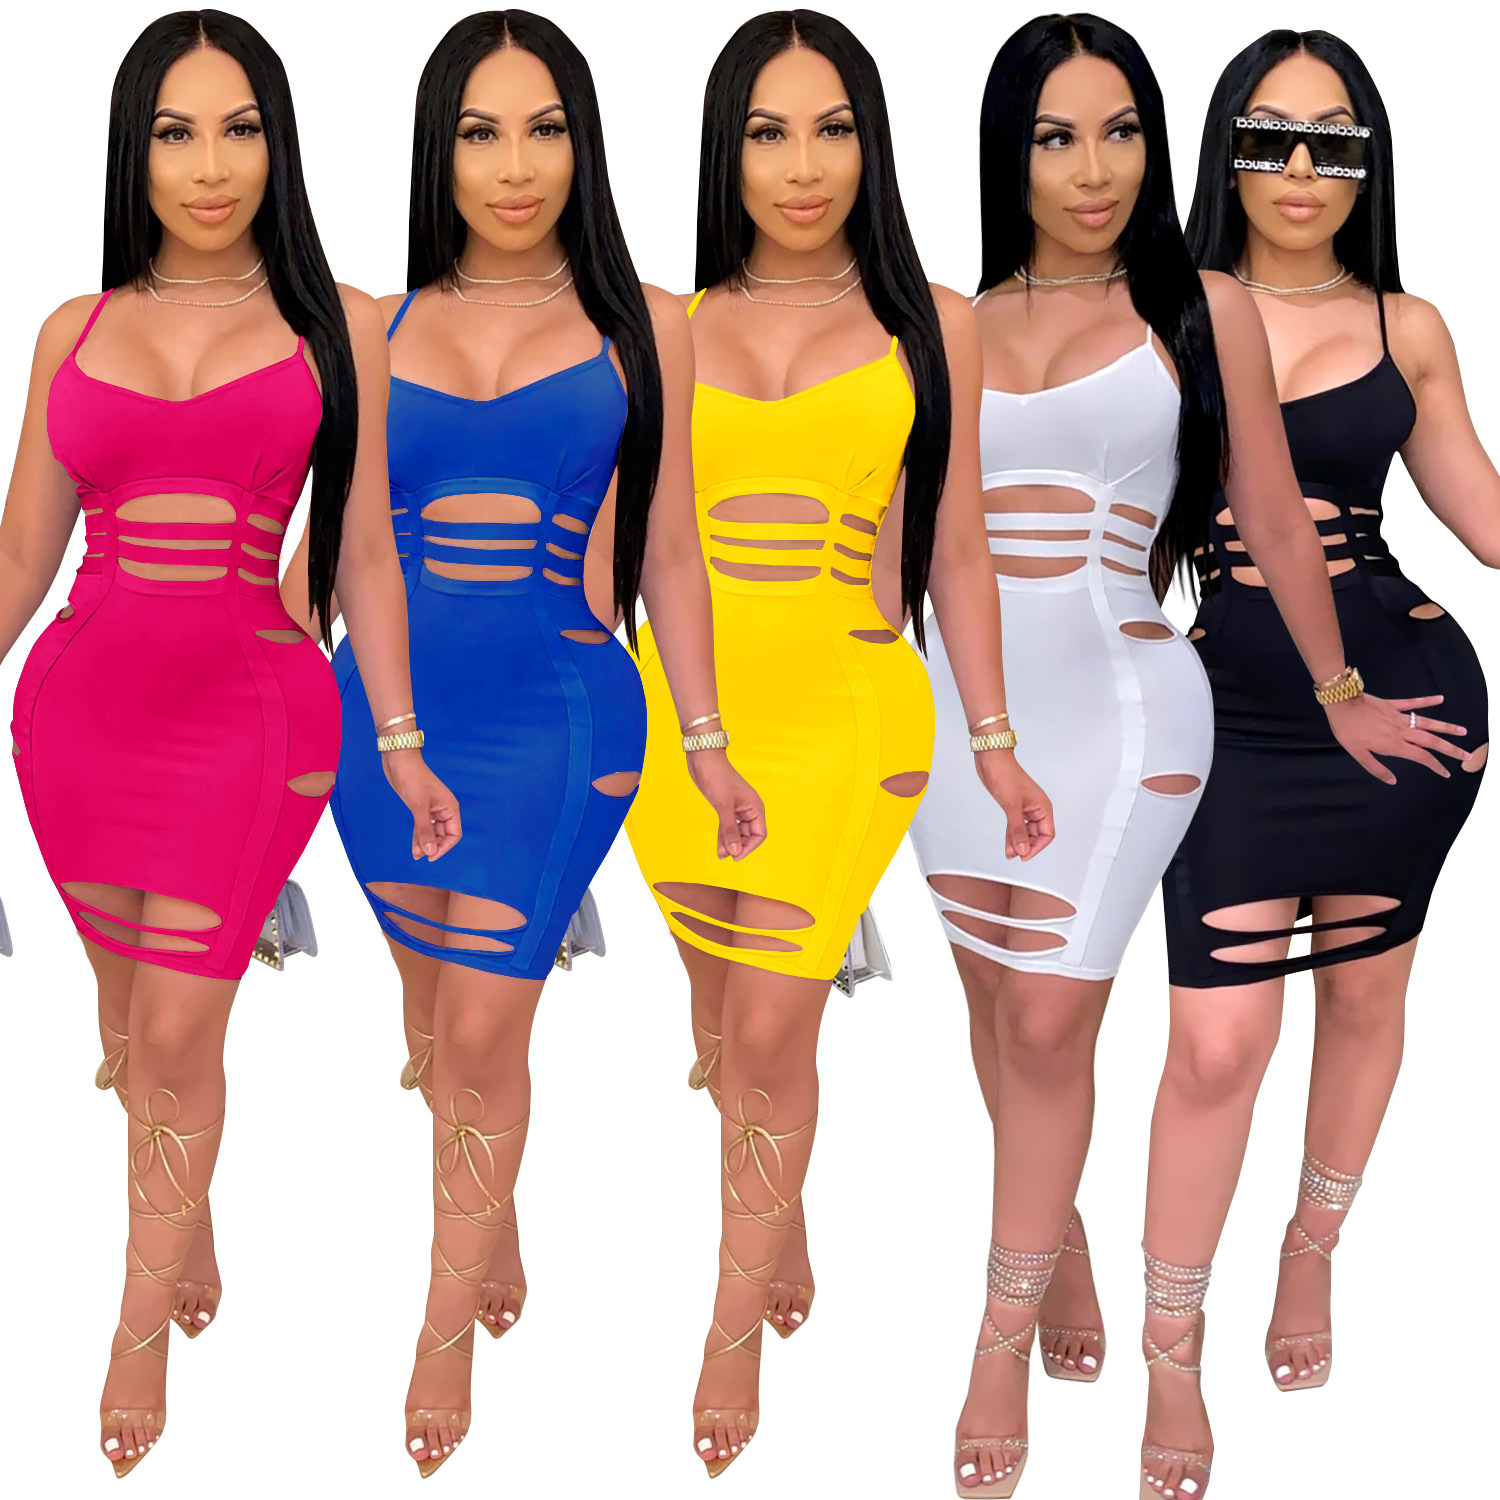 Zoctuo Solid Woman Sexy Bodycon Dress Spaghetti Strap Sleeveless Club Dress Hole V-Neck Sexy Dresses for Women Party Club Night